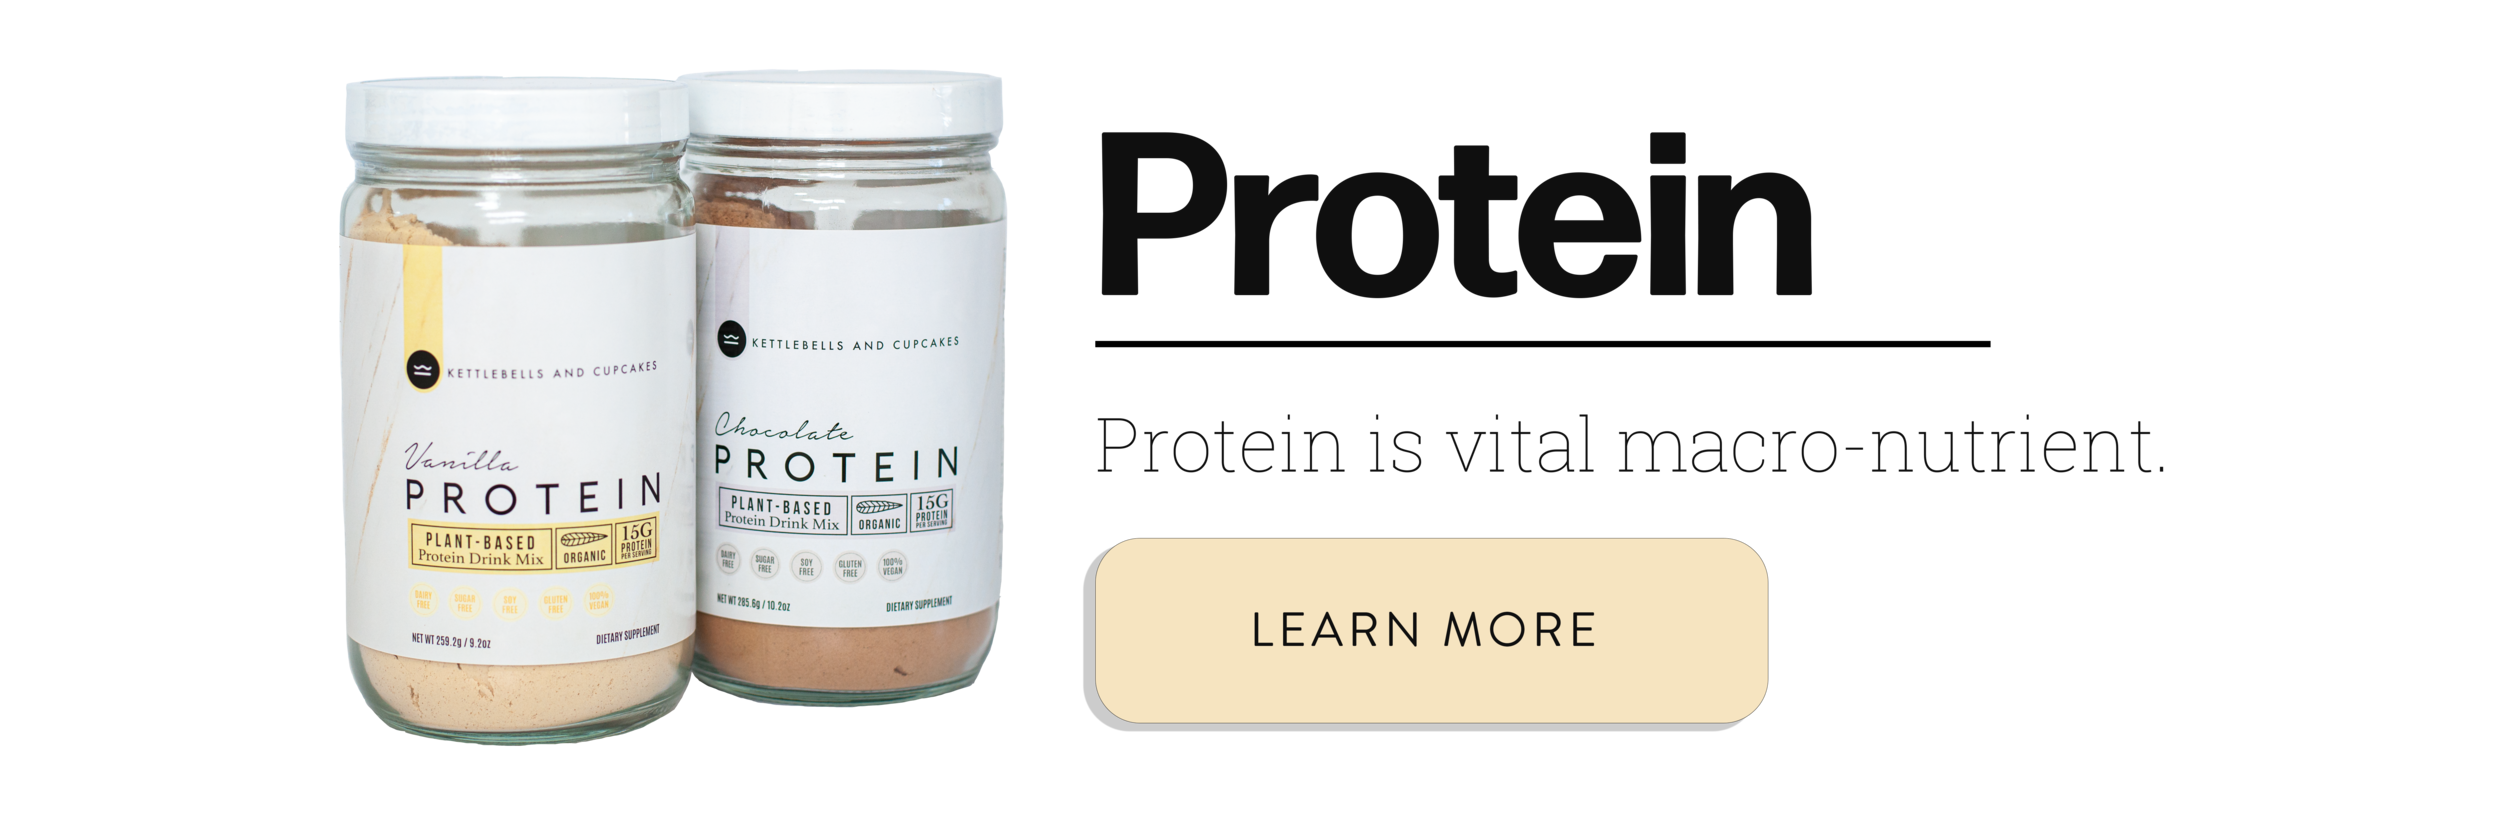 Protein matters.png